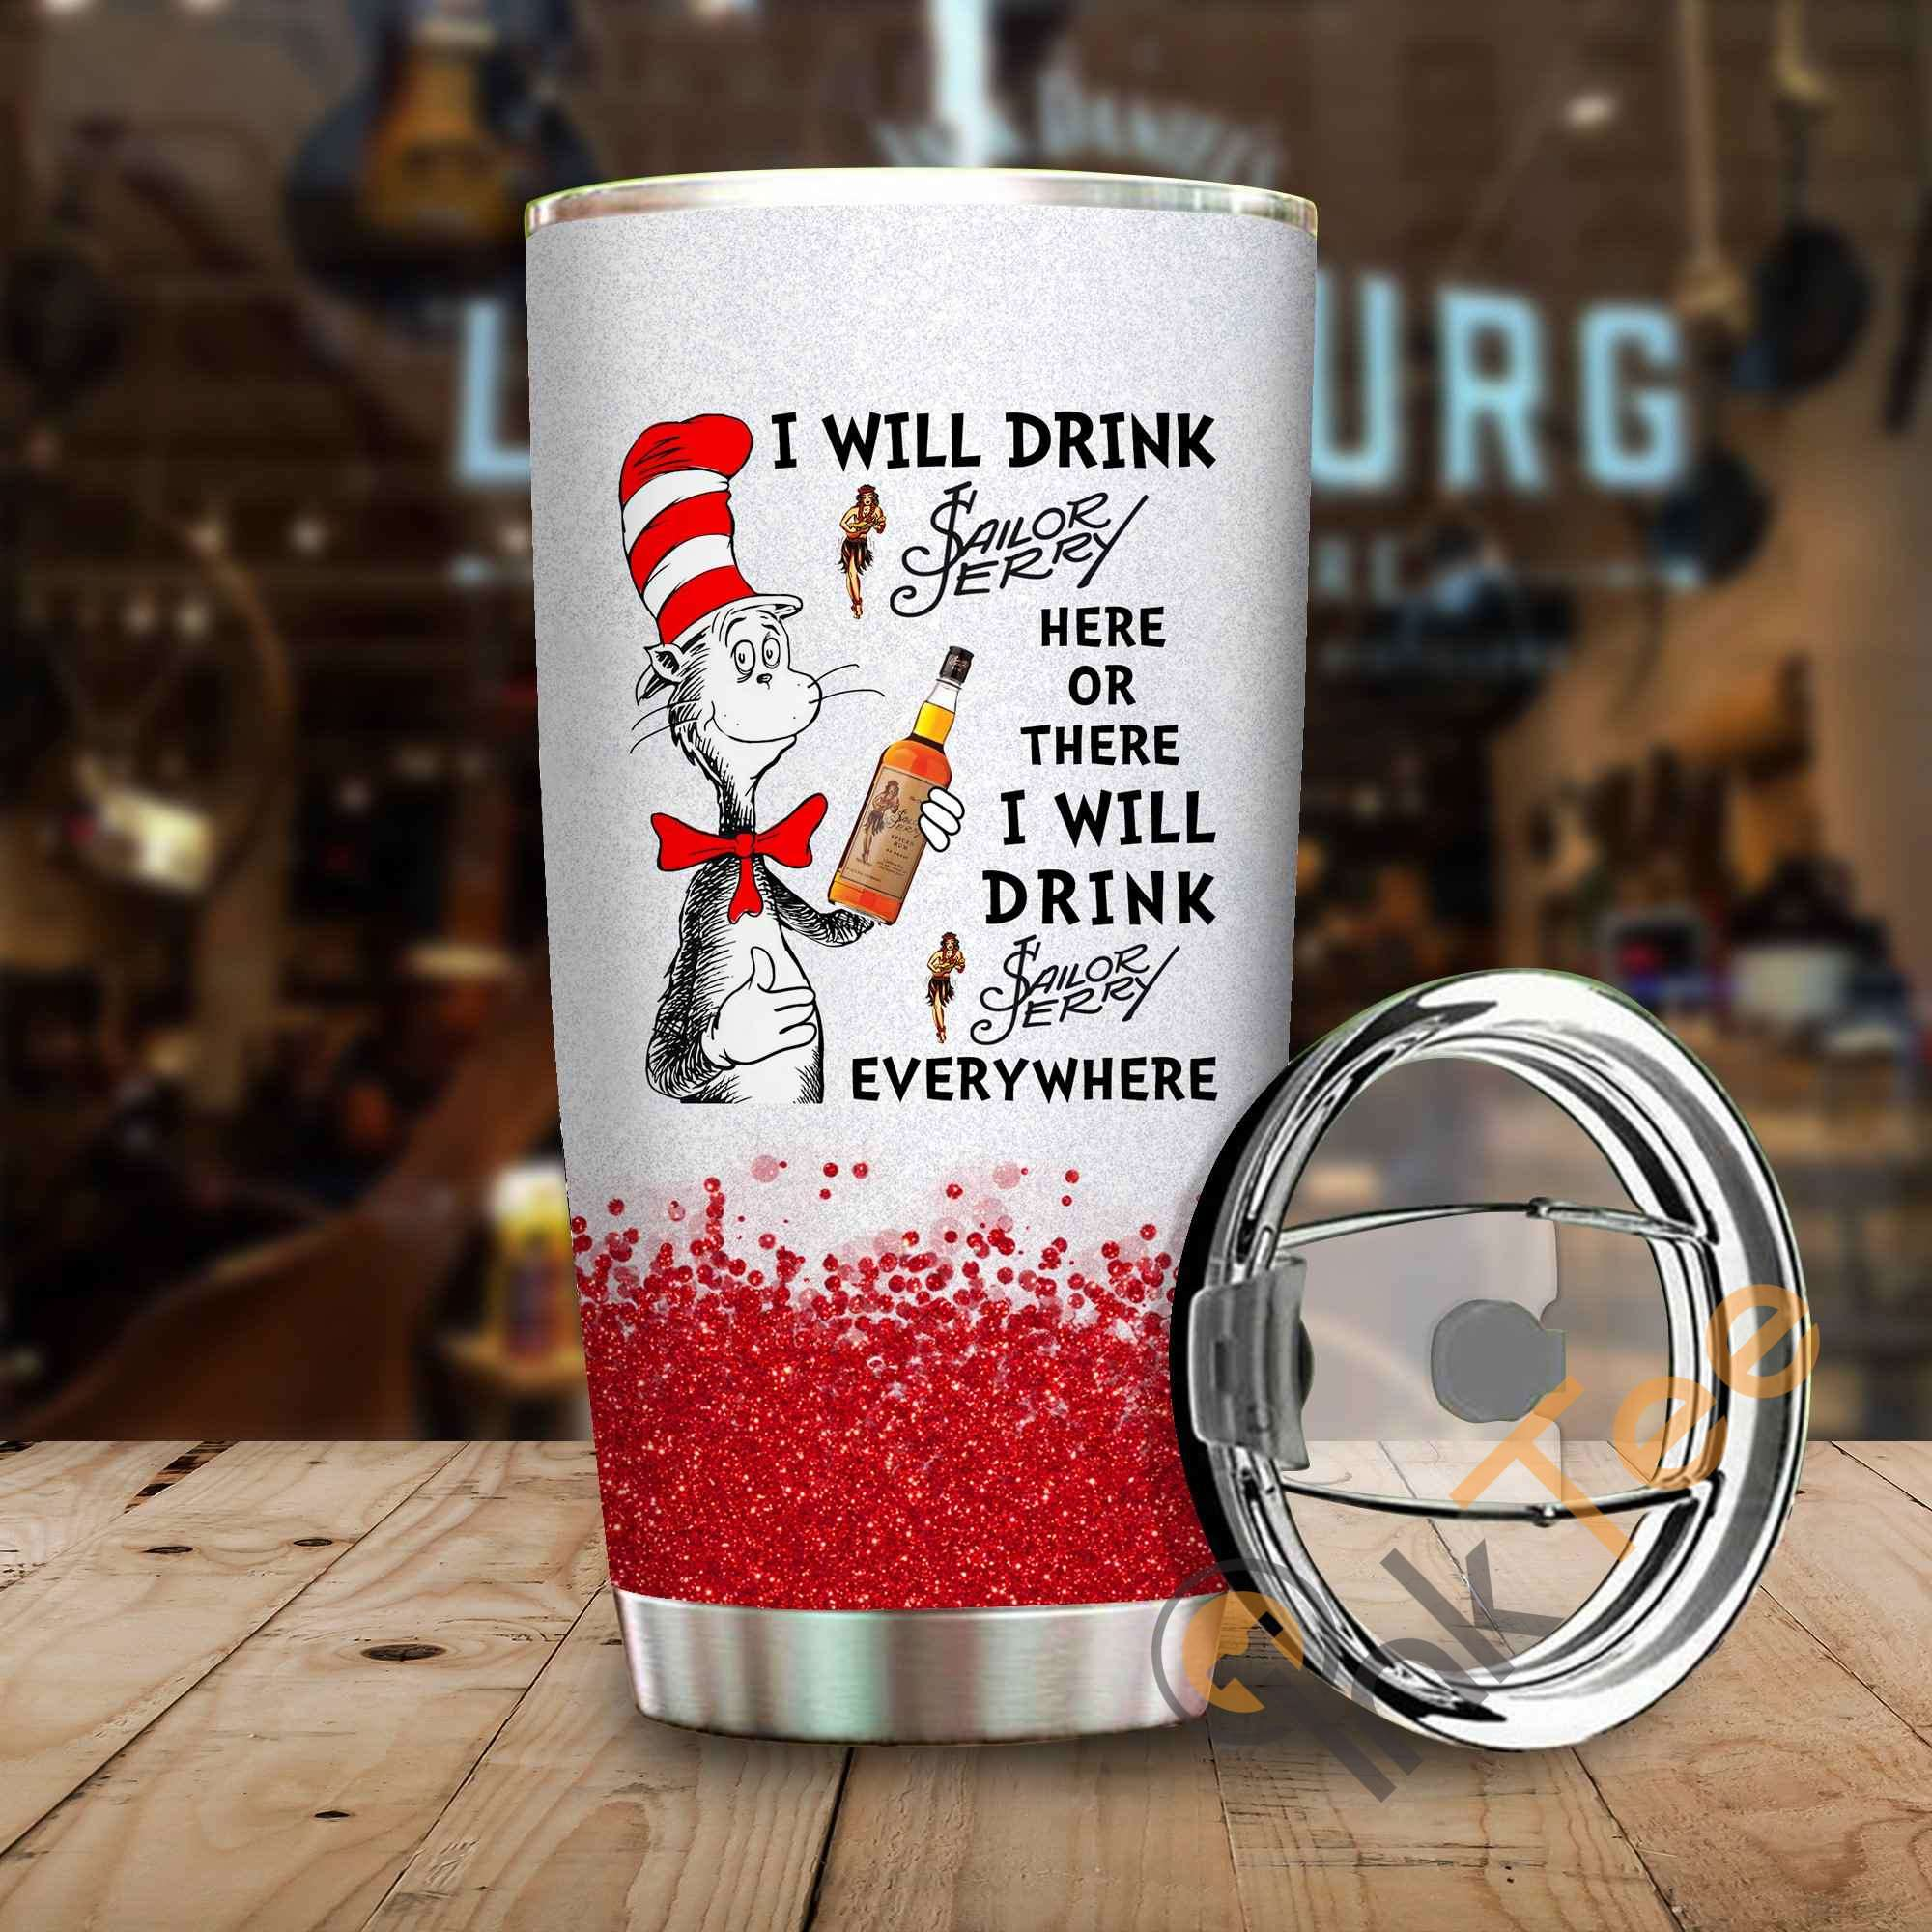 Dr Seuss I Will Drink Sailor Jerry Here Or There Amazon Best Seller Sku 3977 Stainless Steel Tumbler